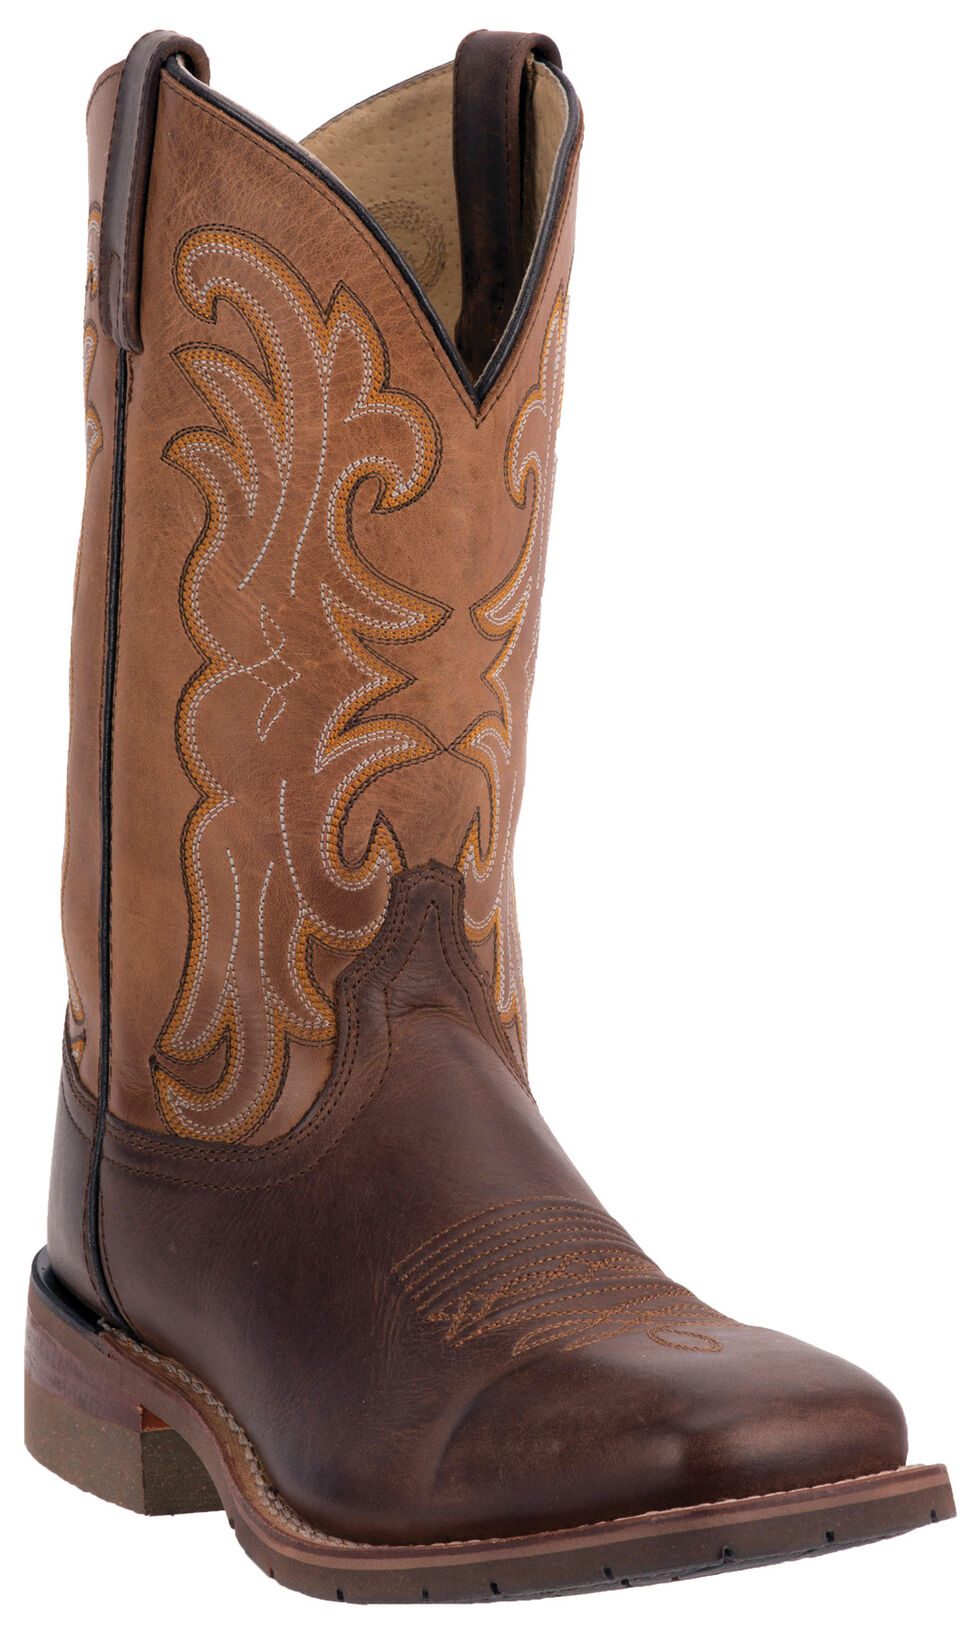 Dan Post Lingbergh Cowboy Boots - Square Toe, Dark Brown, hi-res